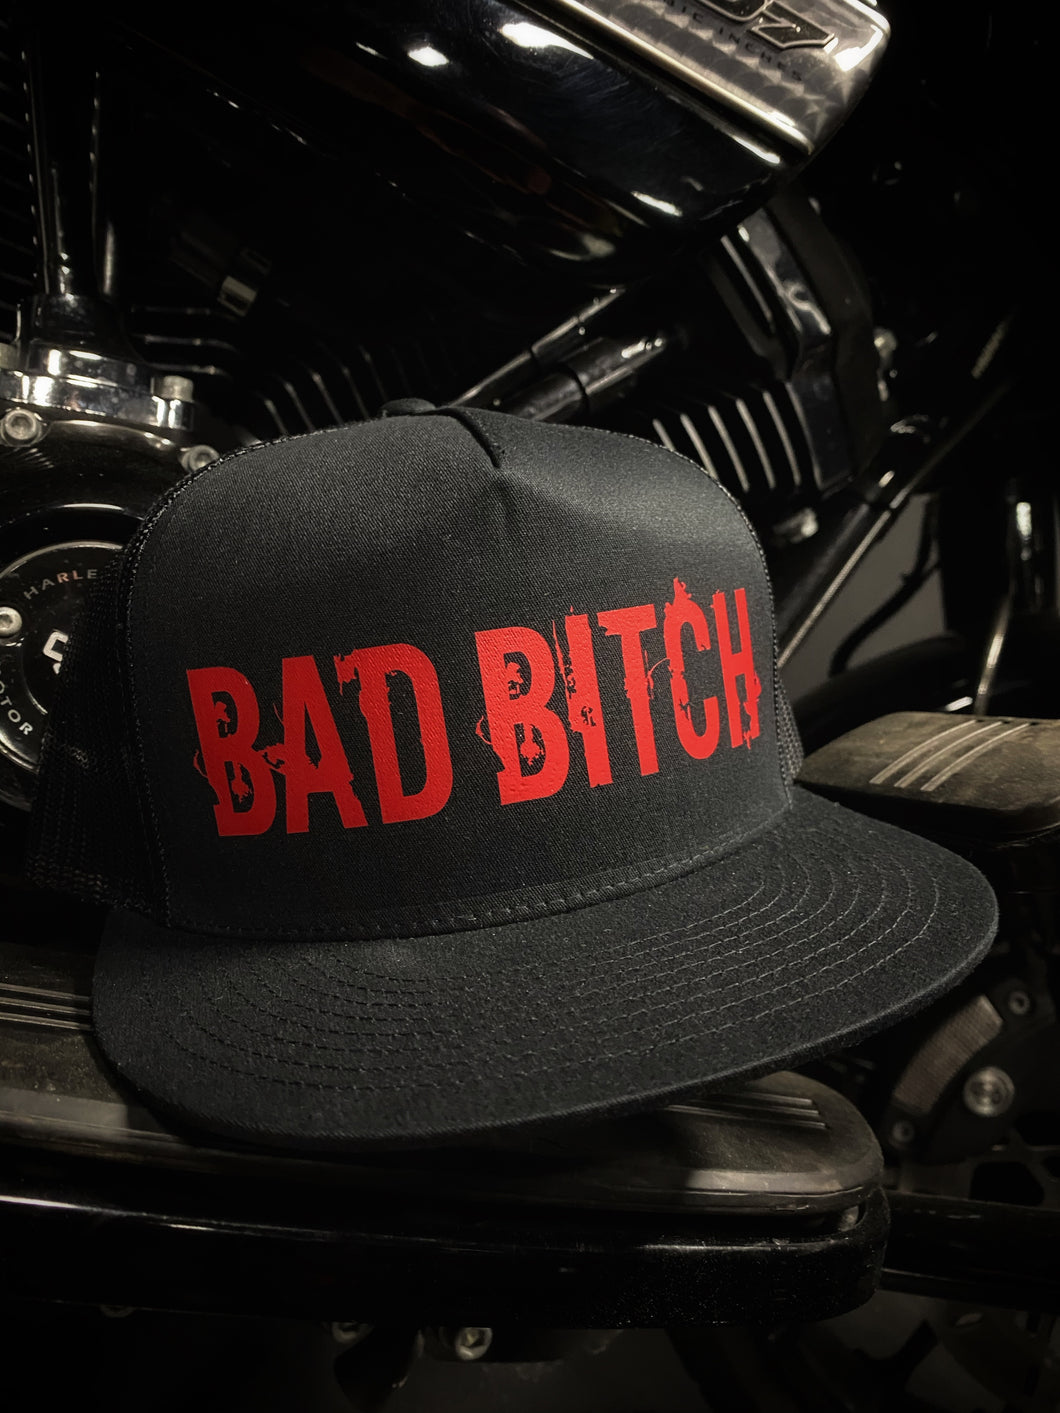 502 - Bad Bitch Hat